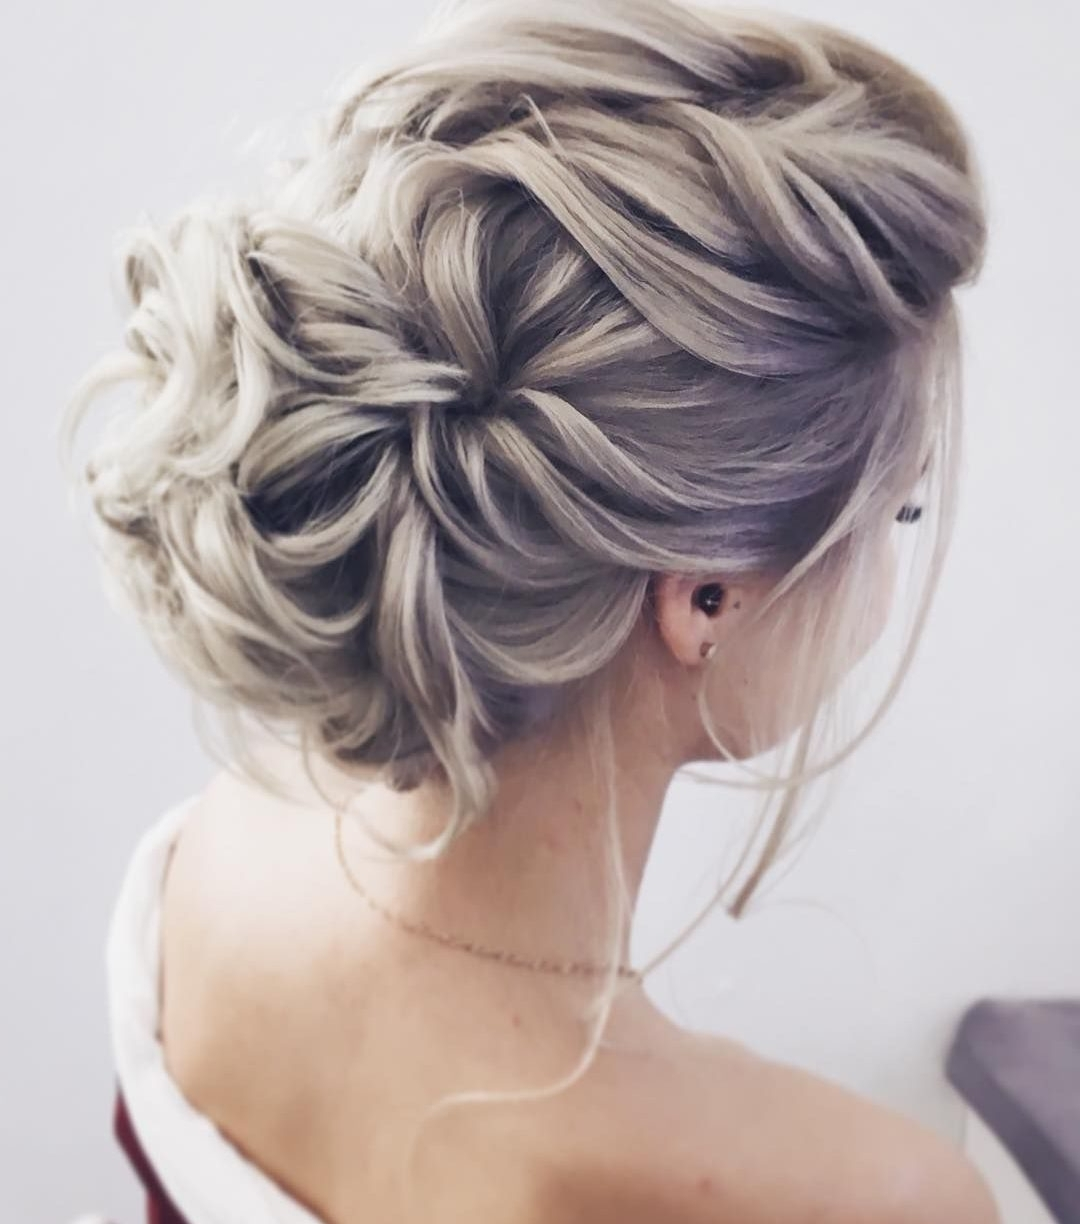 Widely Used Put Up Wedding Hairstyles For Long Hair For Up Hairstyles For Wedding Ideas Elegant Bridal Half Down With Braids (View 8 of 15)